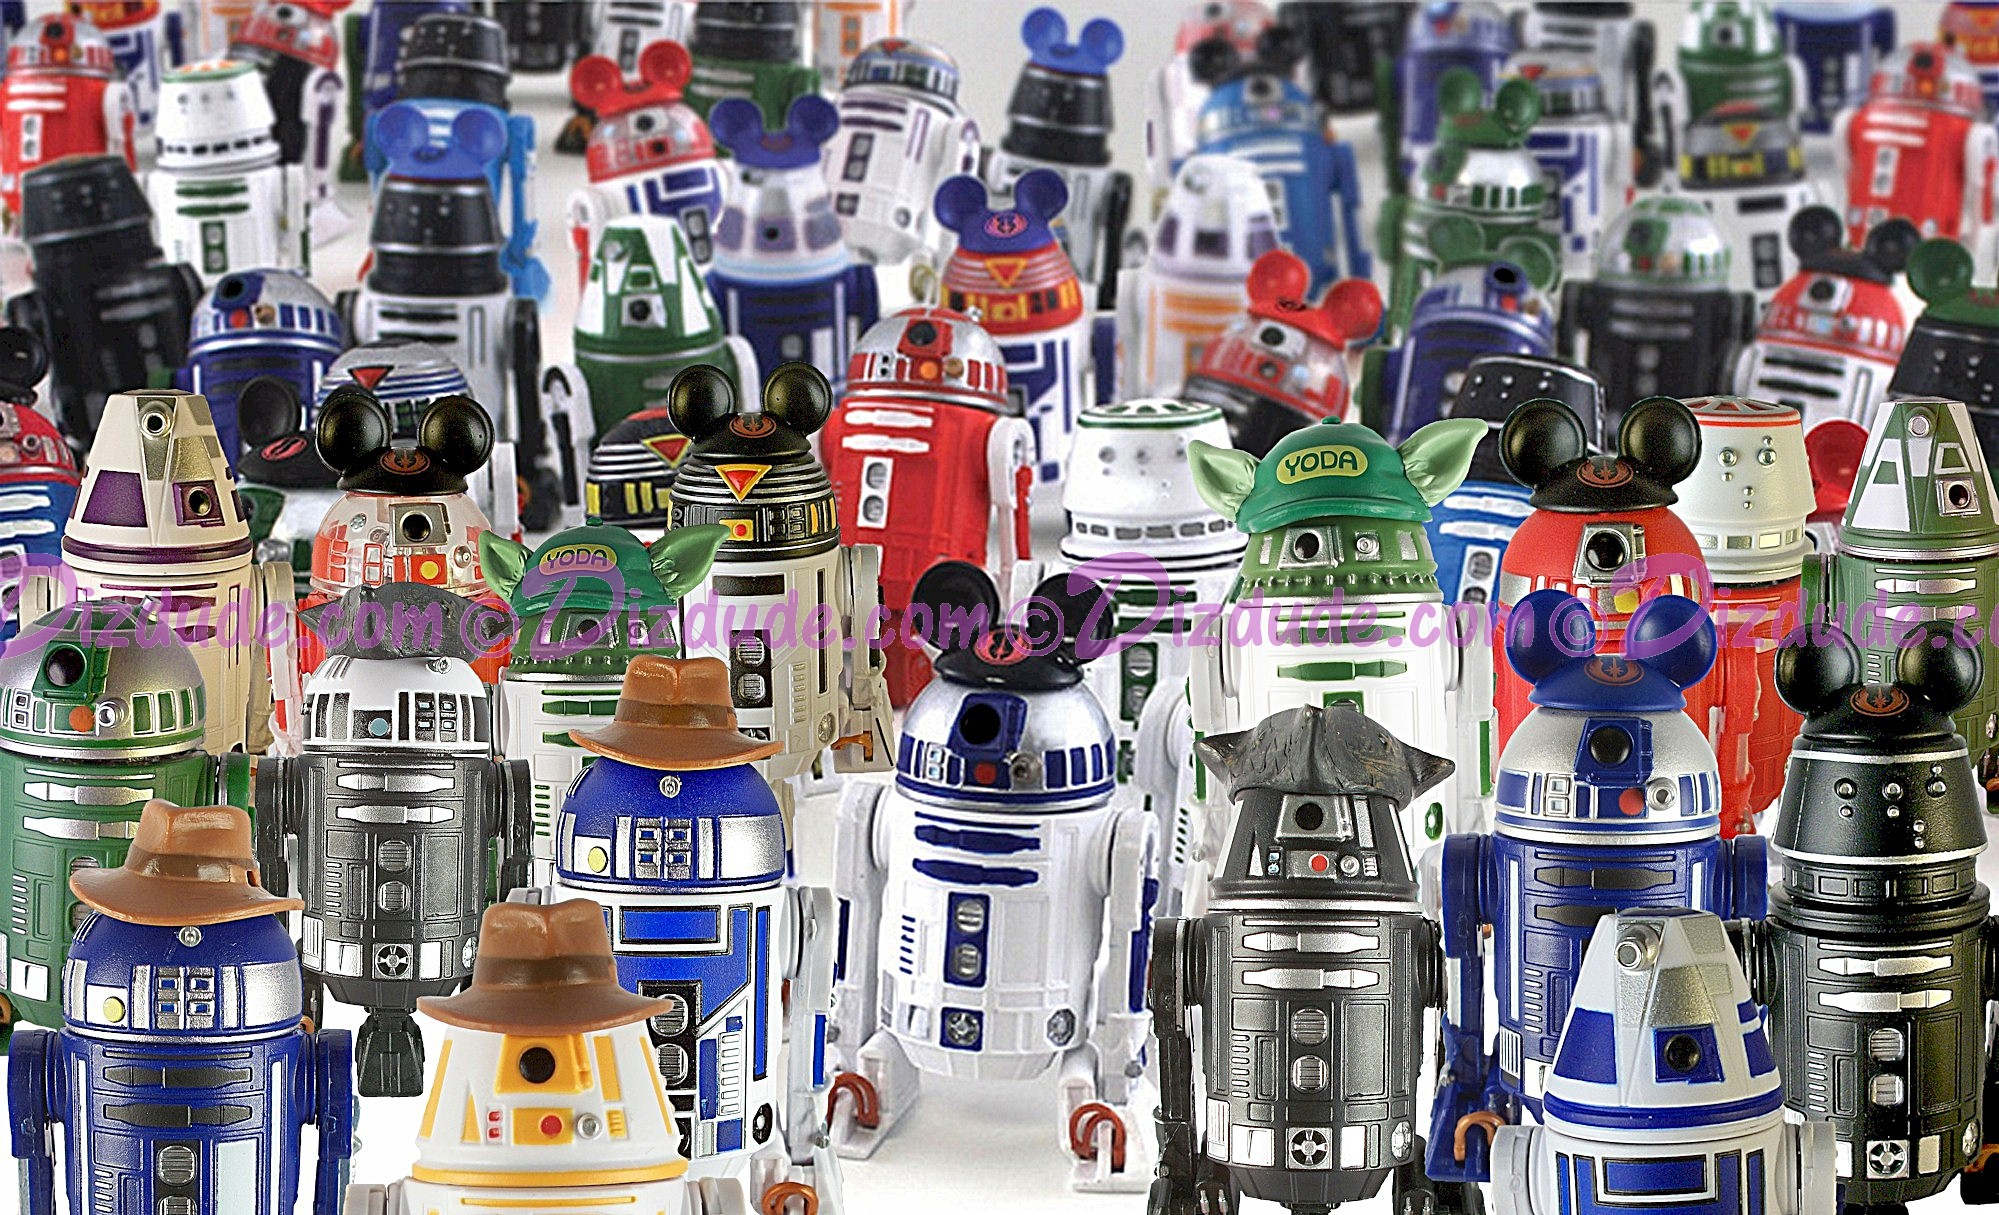 Welcome to DIZDUDE'S DRIOD FACTORY OUTLET™ Build-A-Droid ~ © DIZDUDE.COM